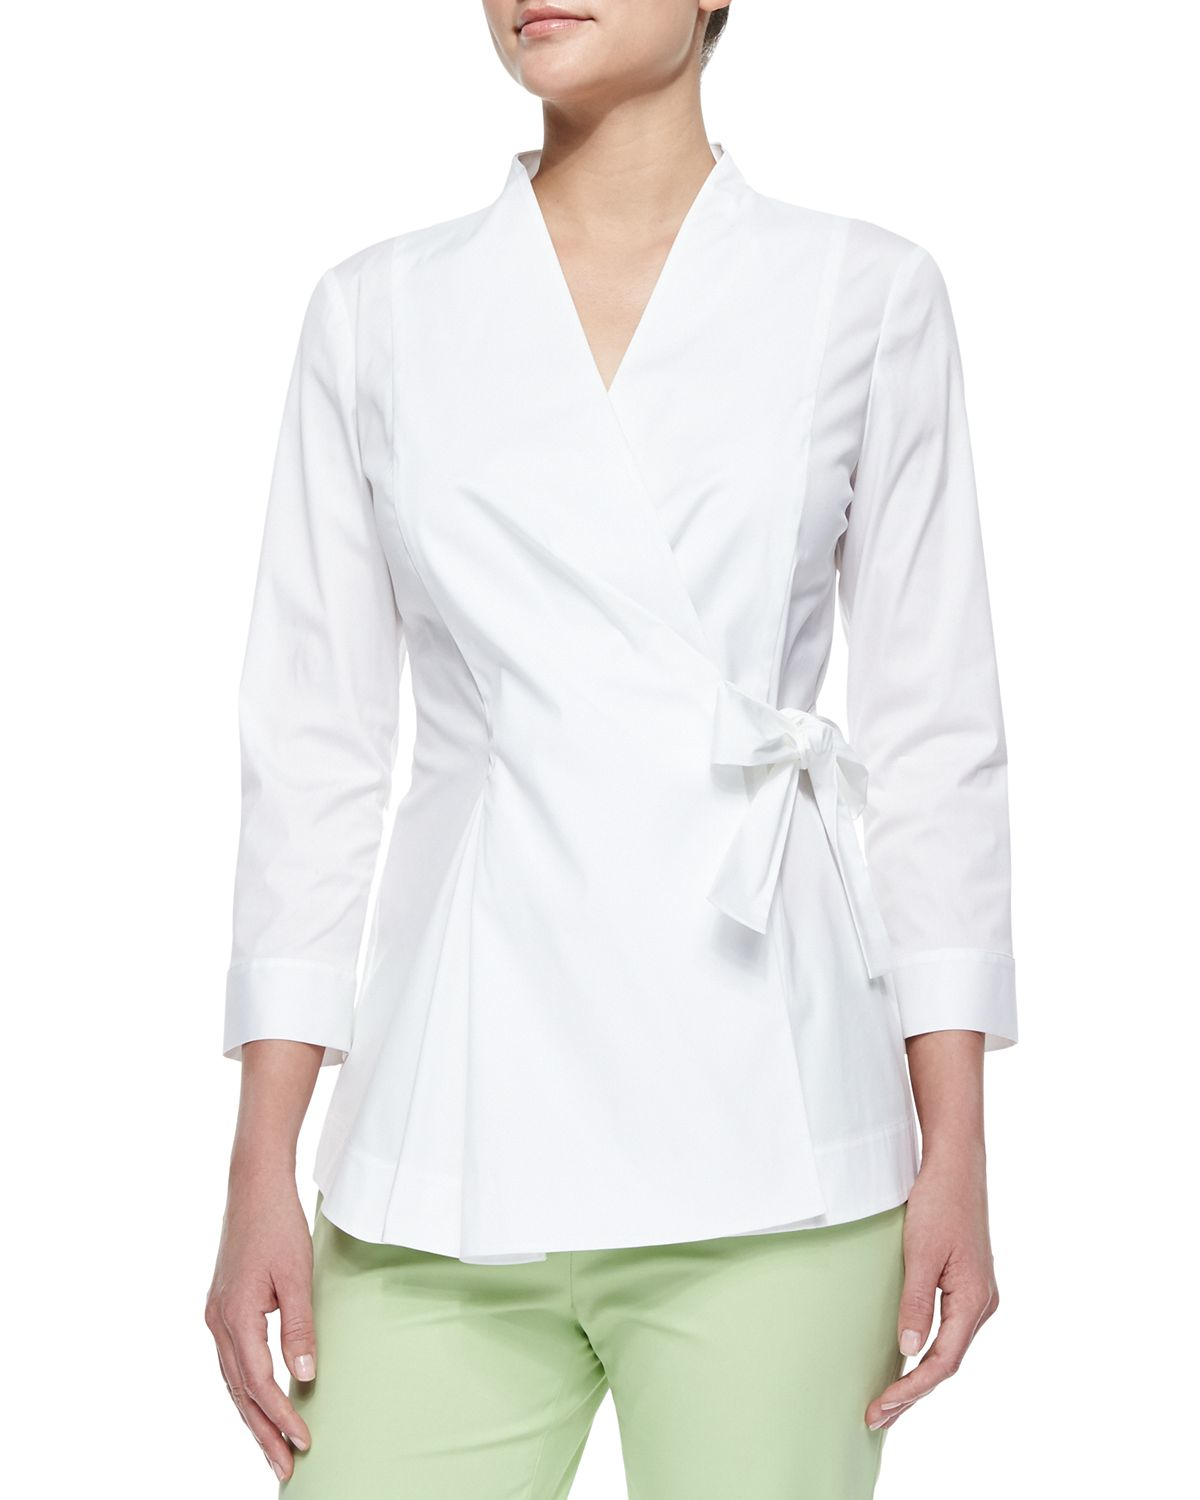 Womens White Side Tie Blouse - Long Blouse With Pants